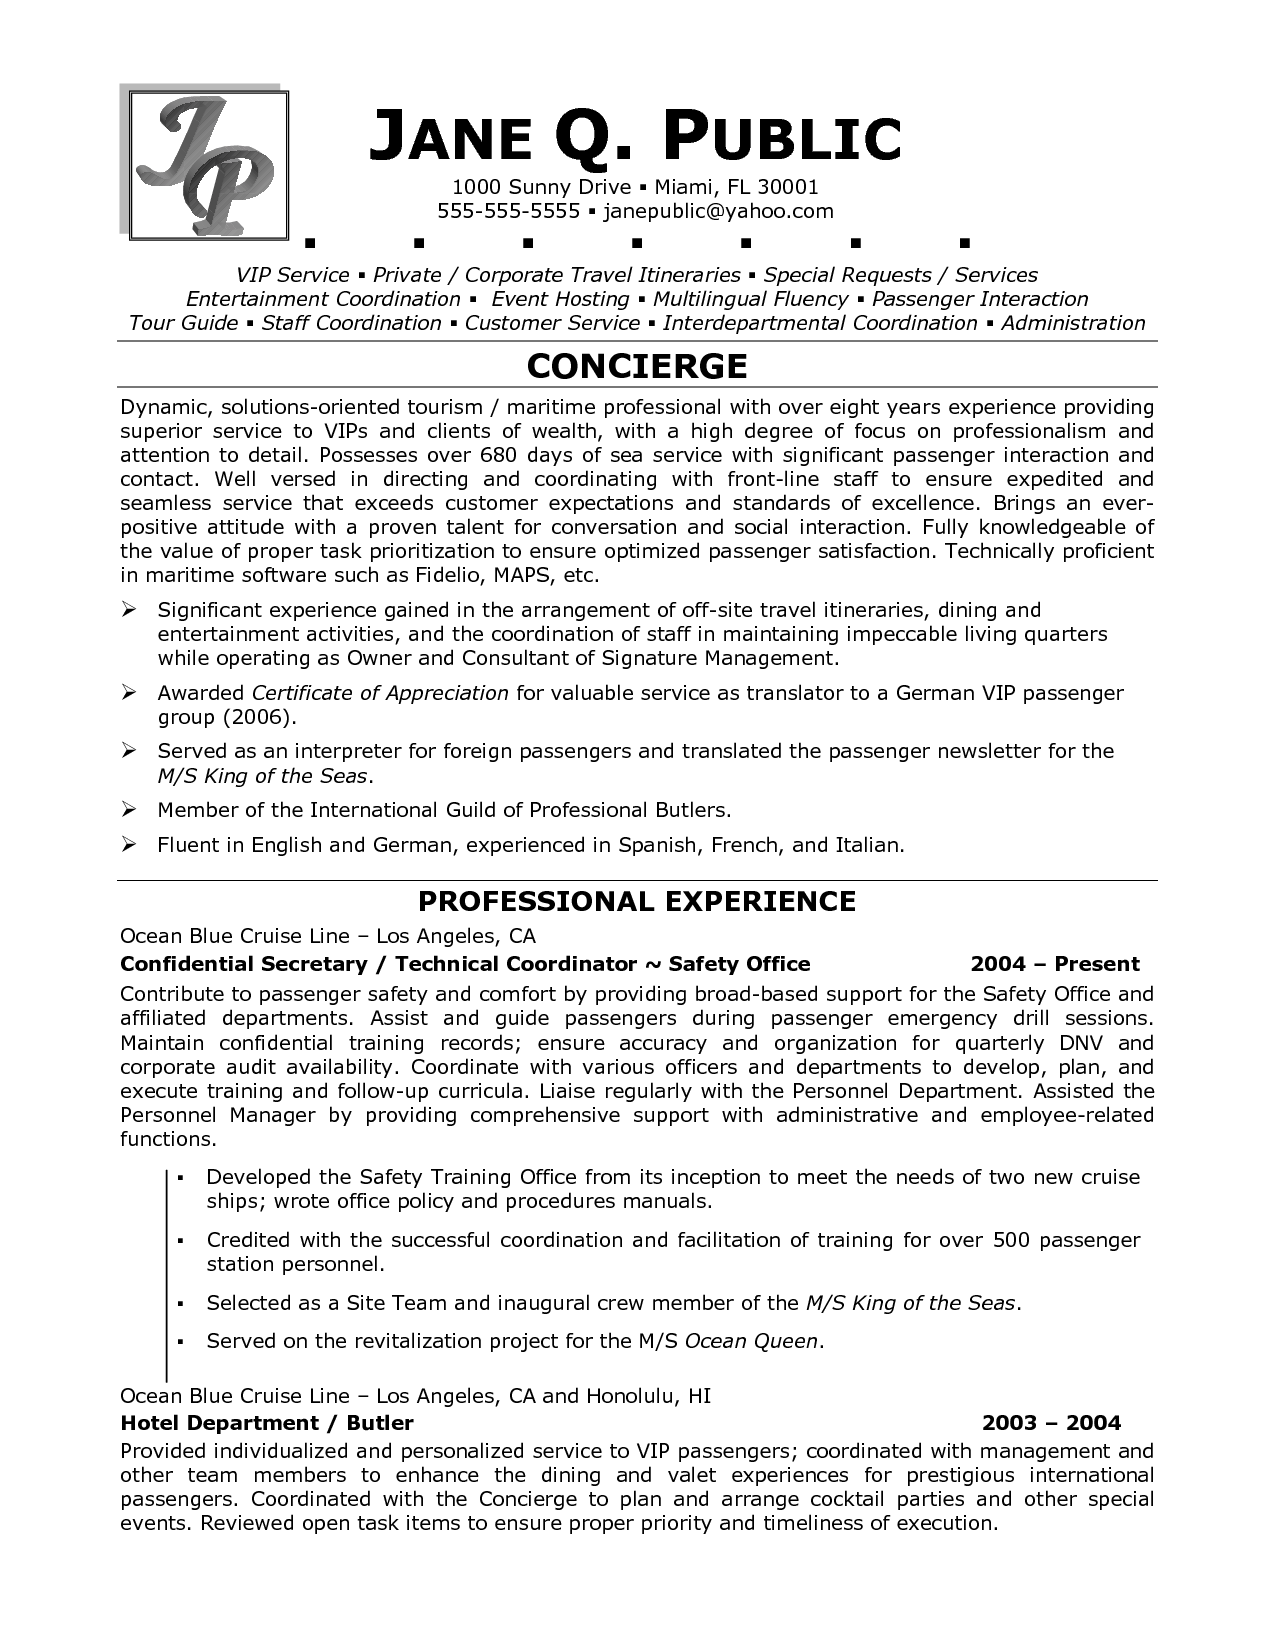 Tour Guides Resume Sample Http Www Resumecareer Info Tour Guides Resume Sample Resume Examples Cover Letter Example Basic Resume Examples